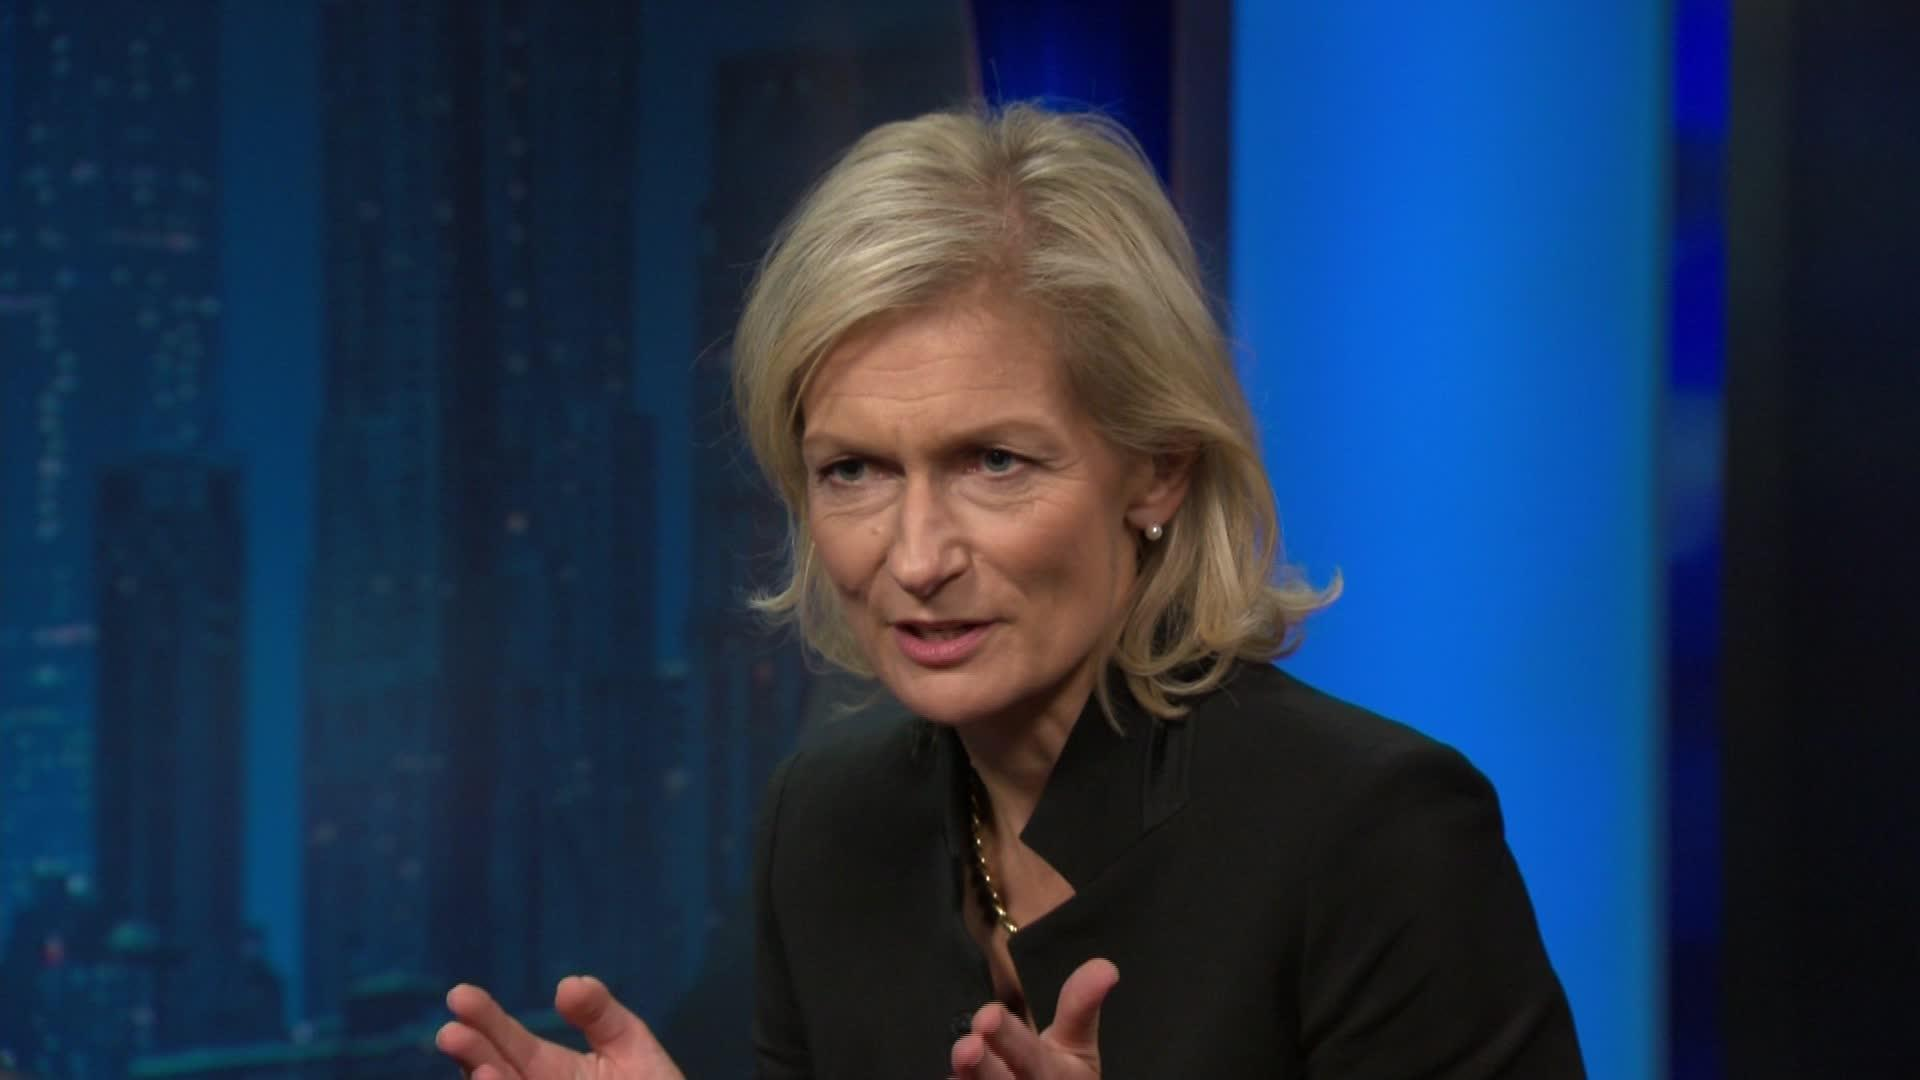 Zanny Minton Beddoes Discusses Her Work at The Economist | Video ...